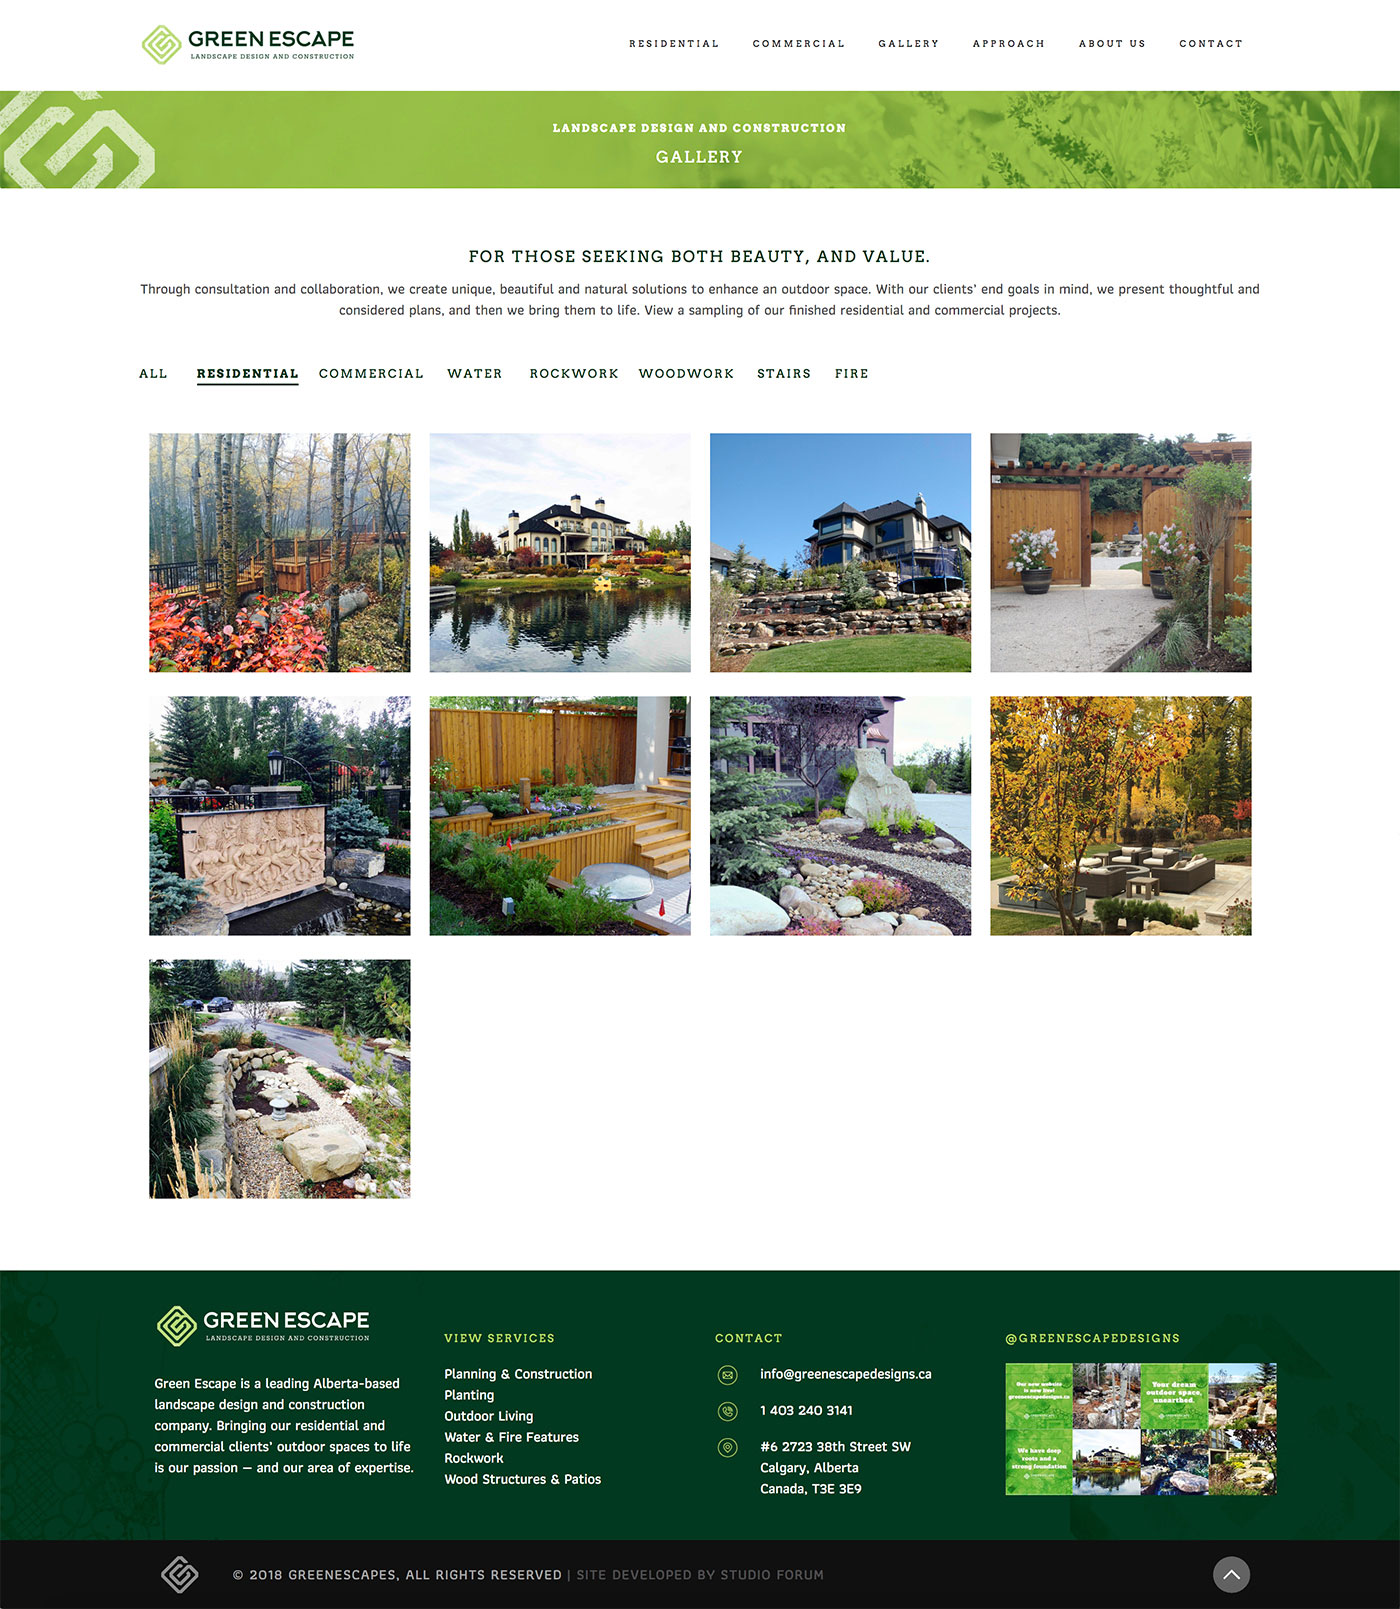 Green Escape Designs website gallery design showing residential portfolio items